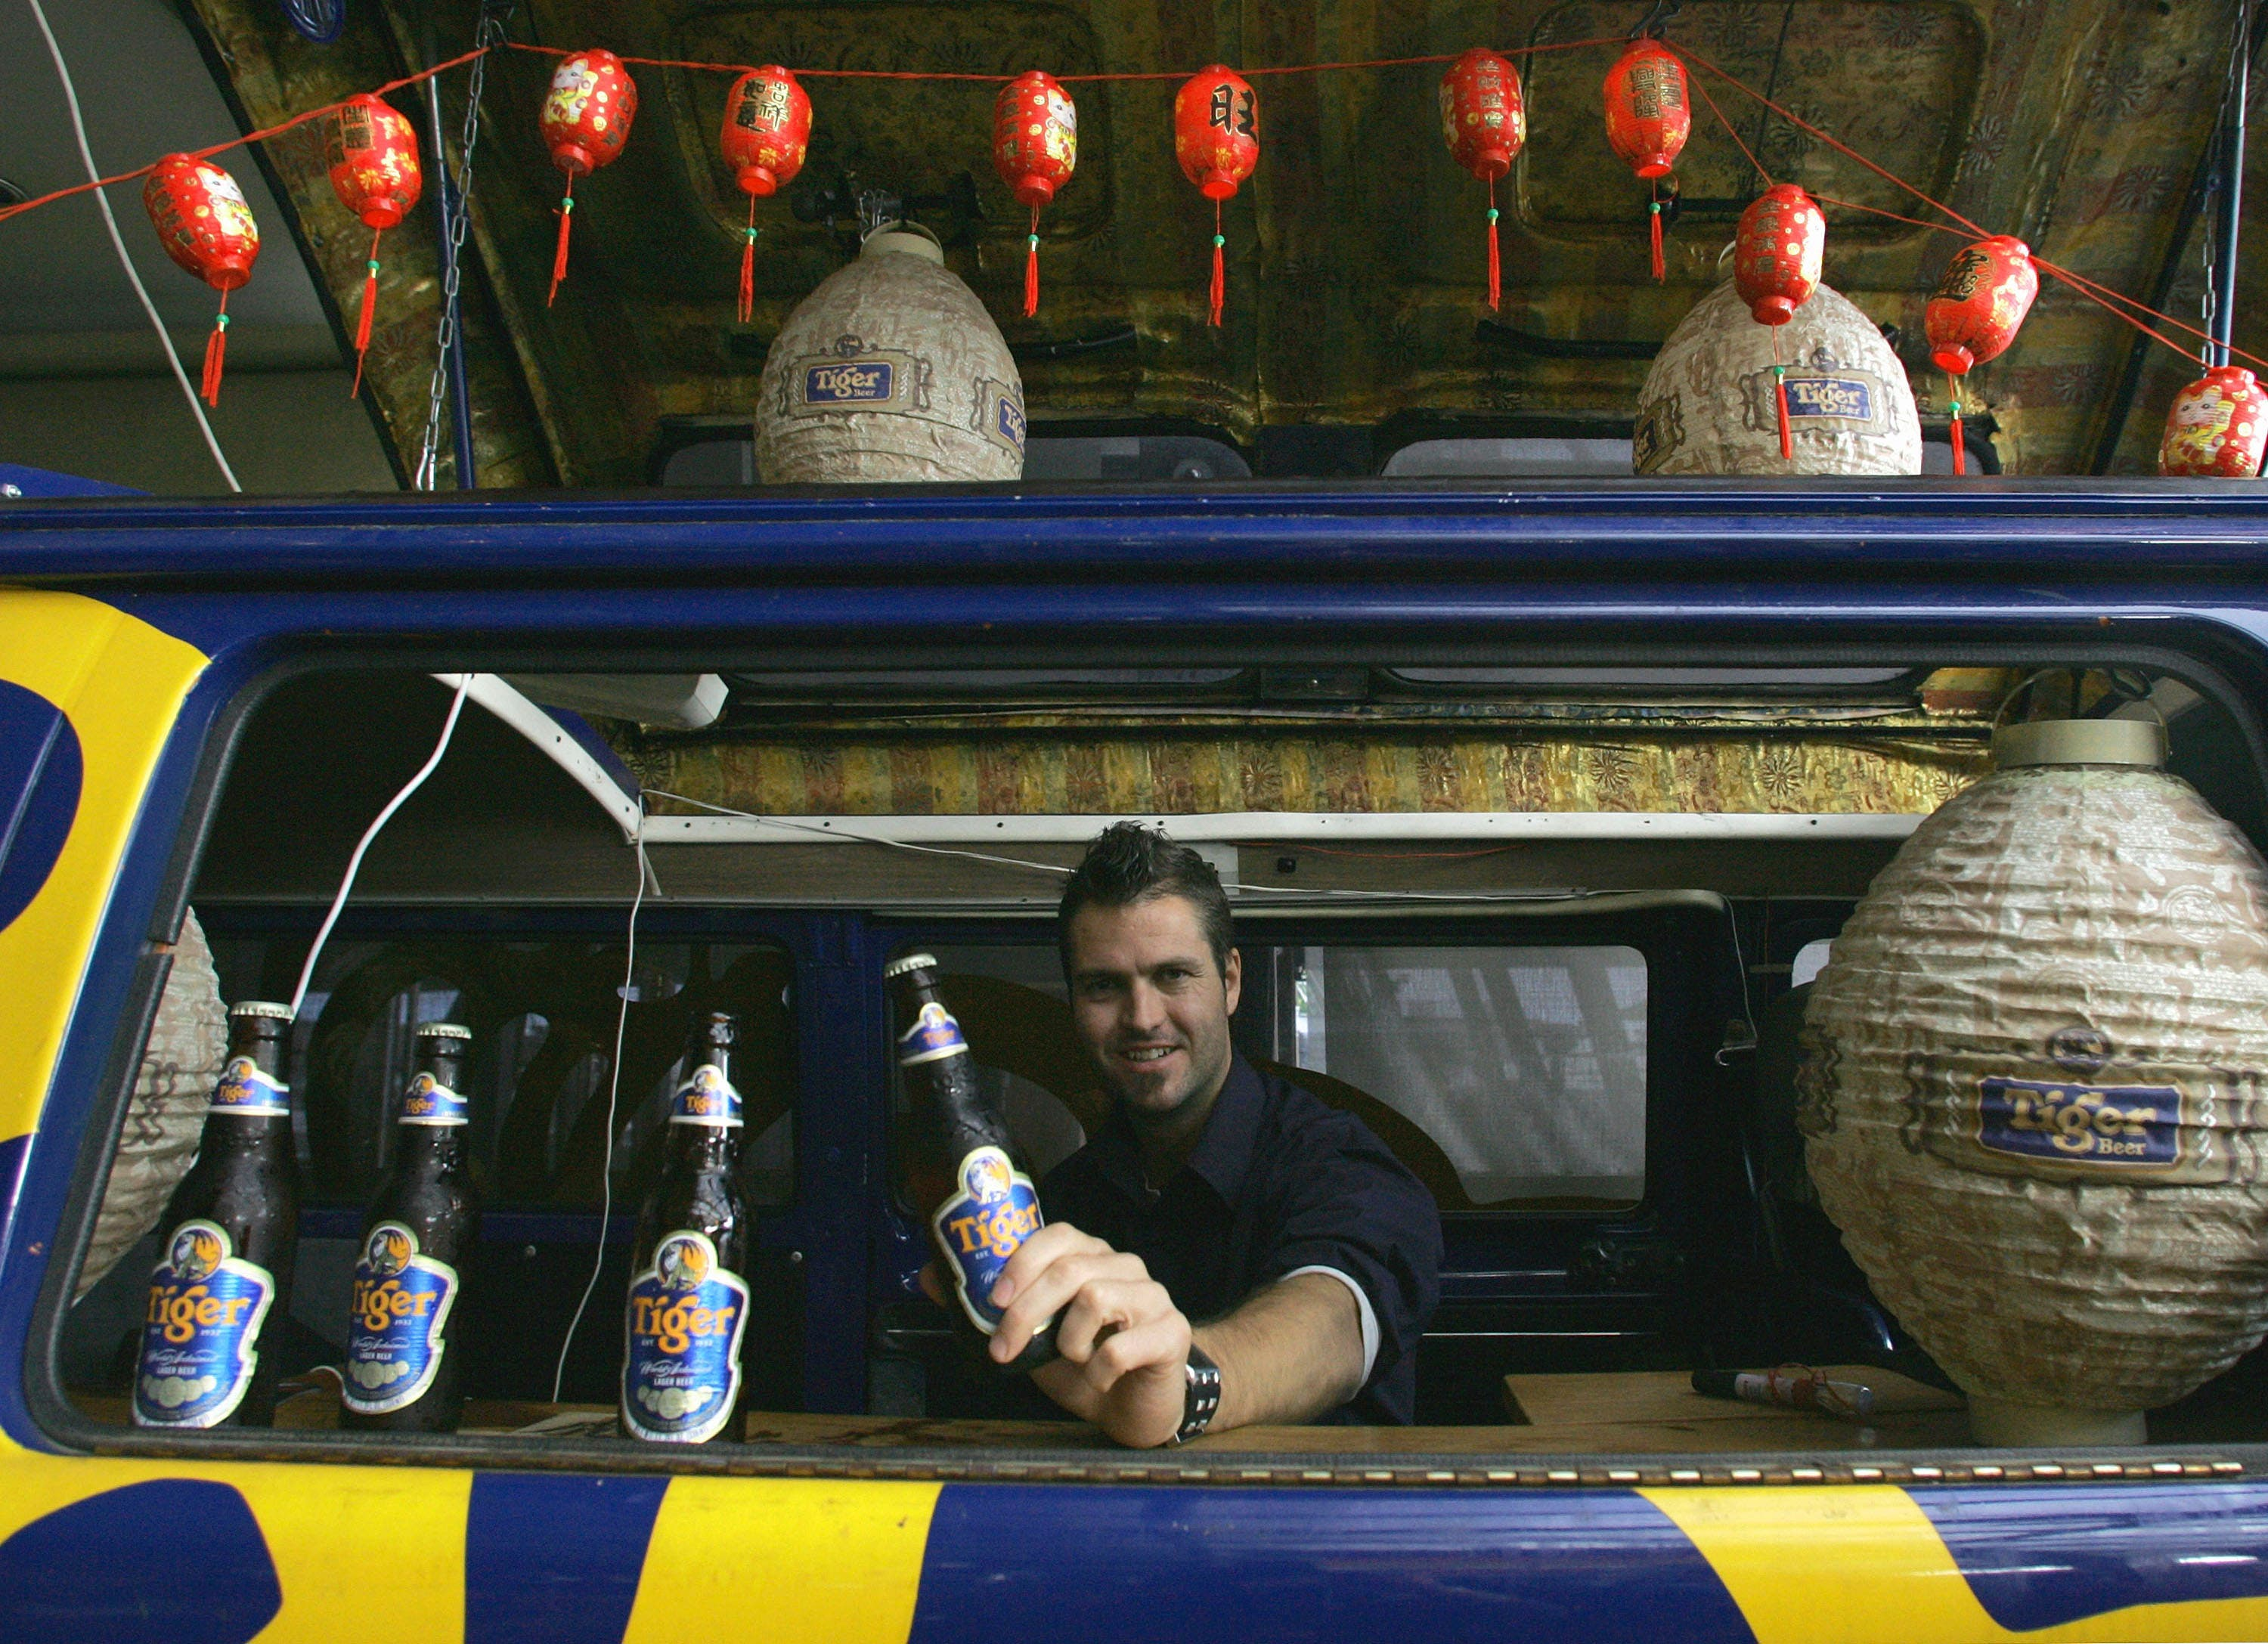 Malaysia scores 'high' in alcoholic consumption, no doubt a record boosted by the national favorite, Tiger Beer.